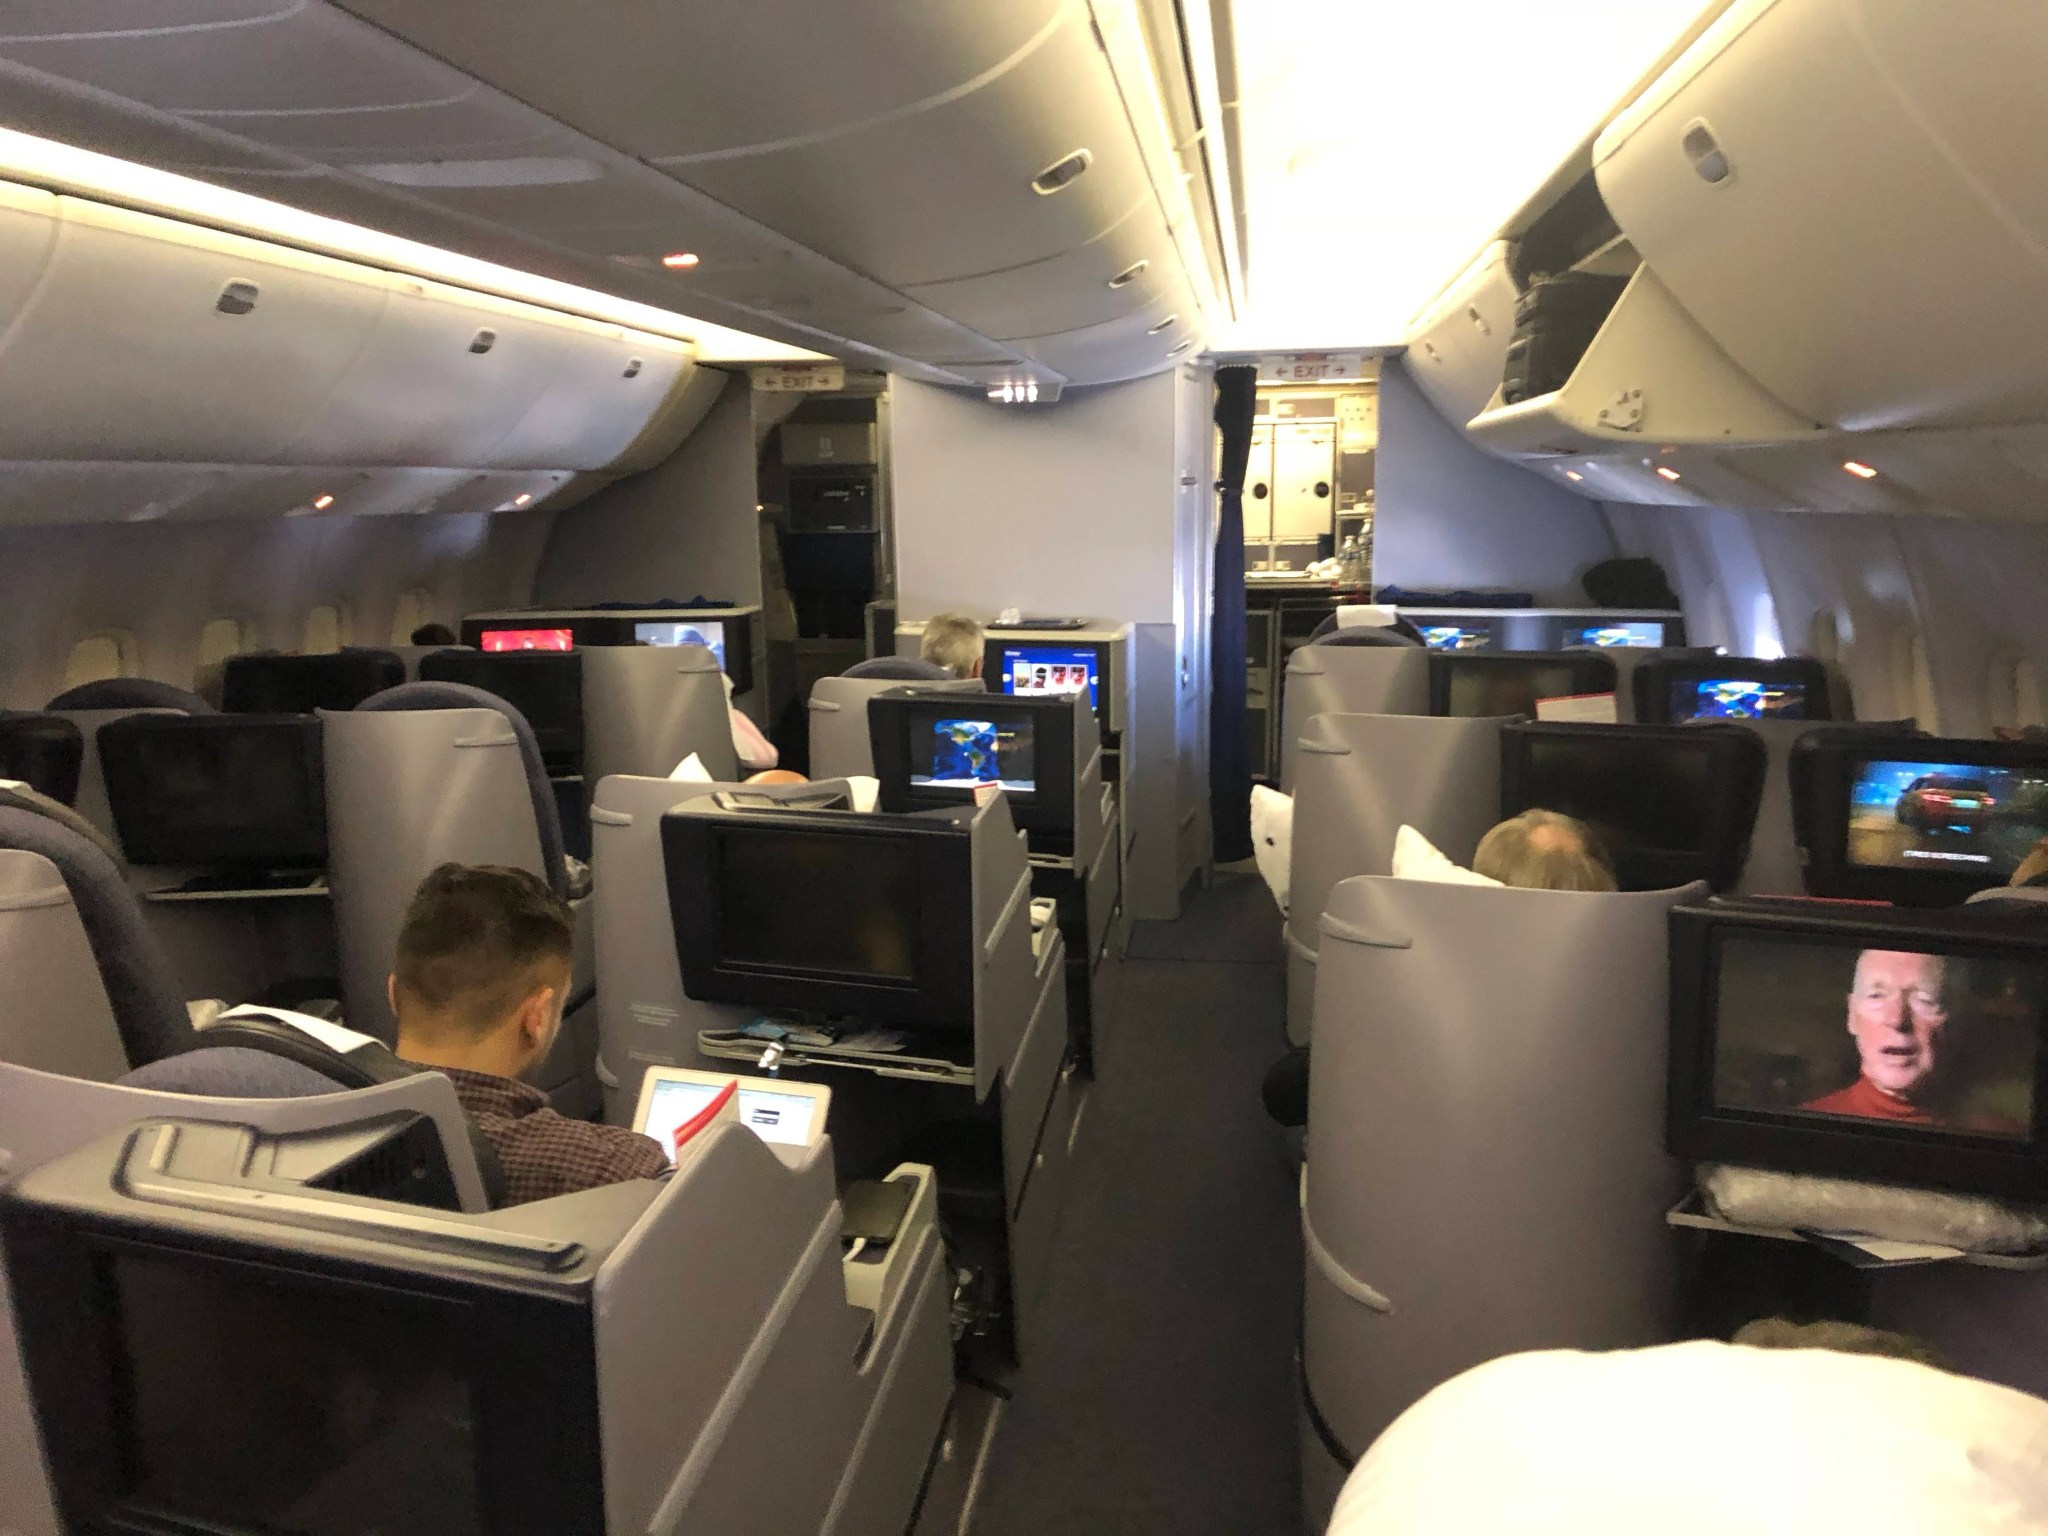 Review: United (767-400ER) Polaris Business From London to NYC